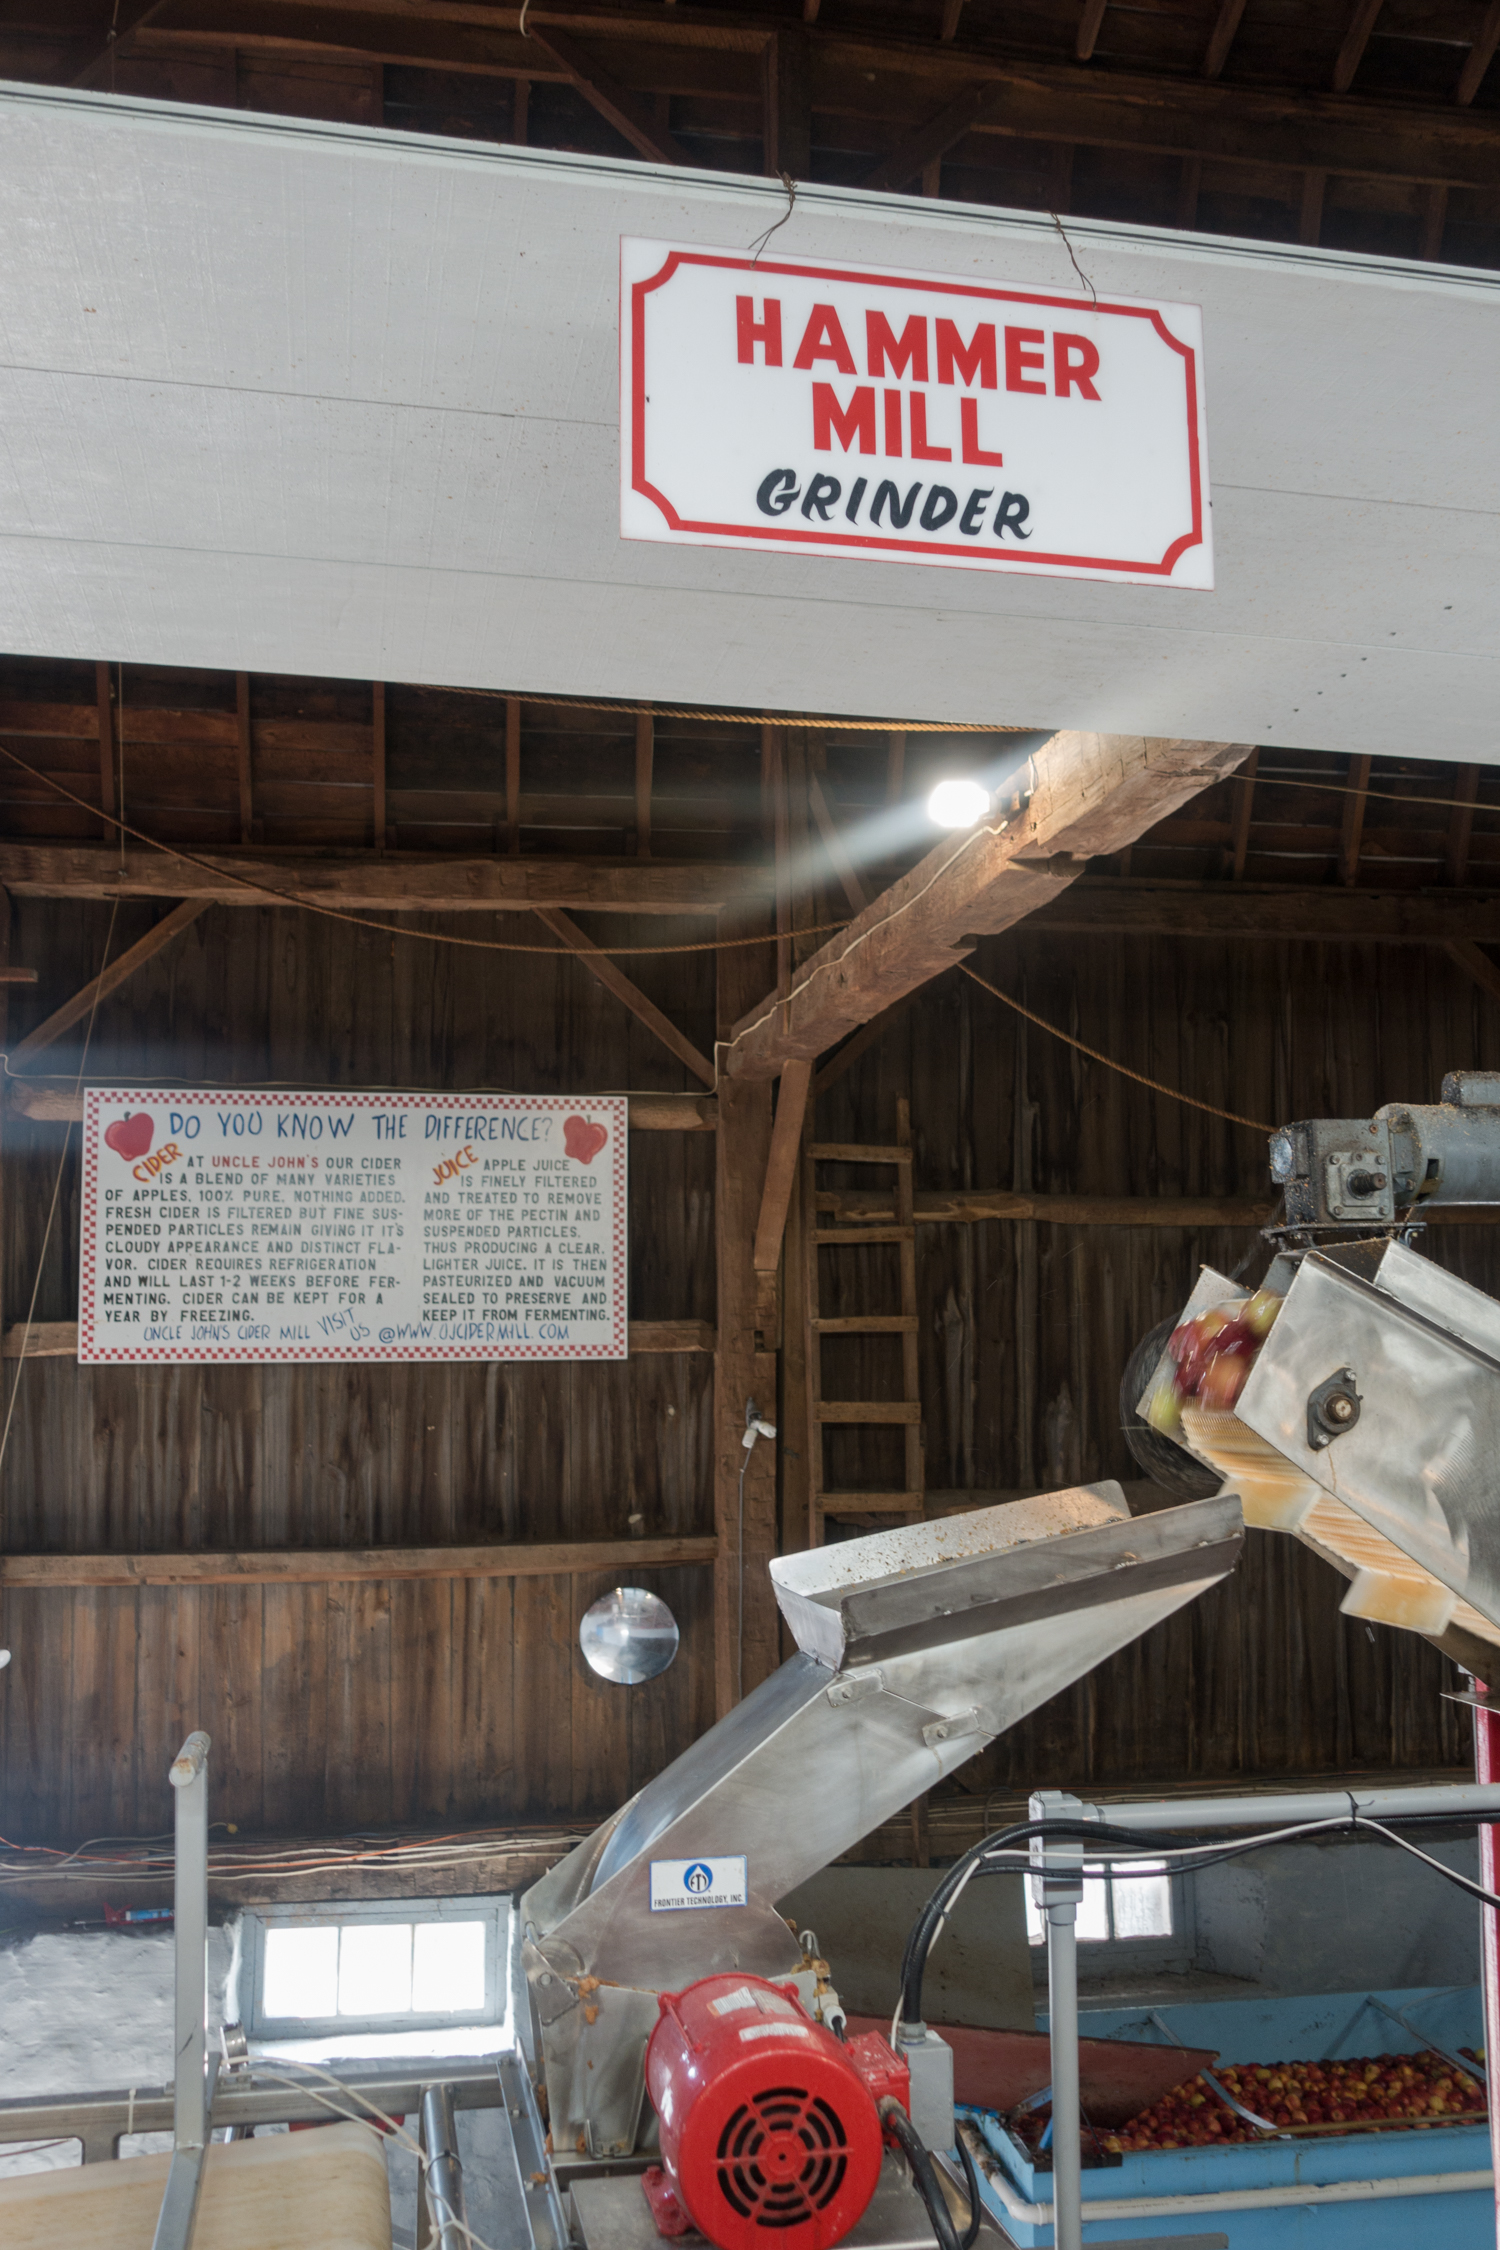 Every fall, Michiganders partake in one of the most quintessential fall activities —visiting to the local cider mill. Visiting the cider mill is an annual tradition for most families here in the great lakes state.